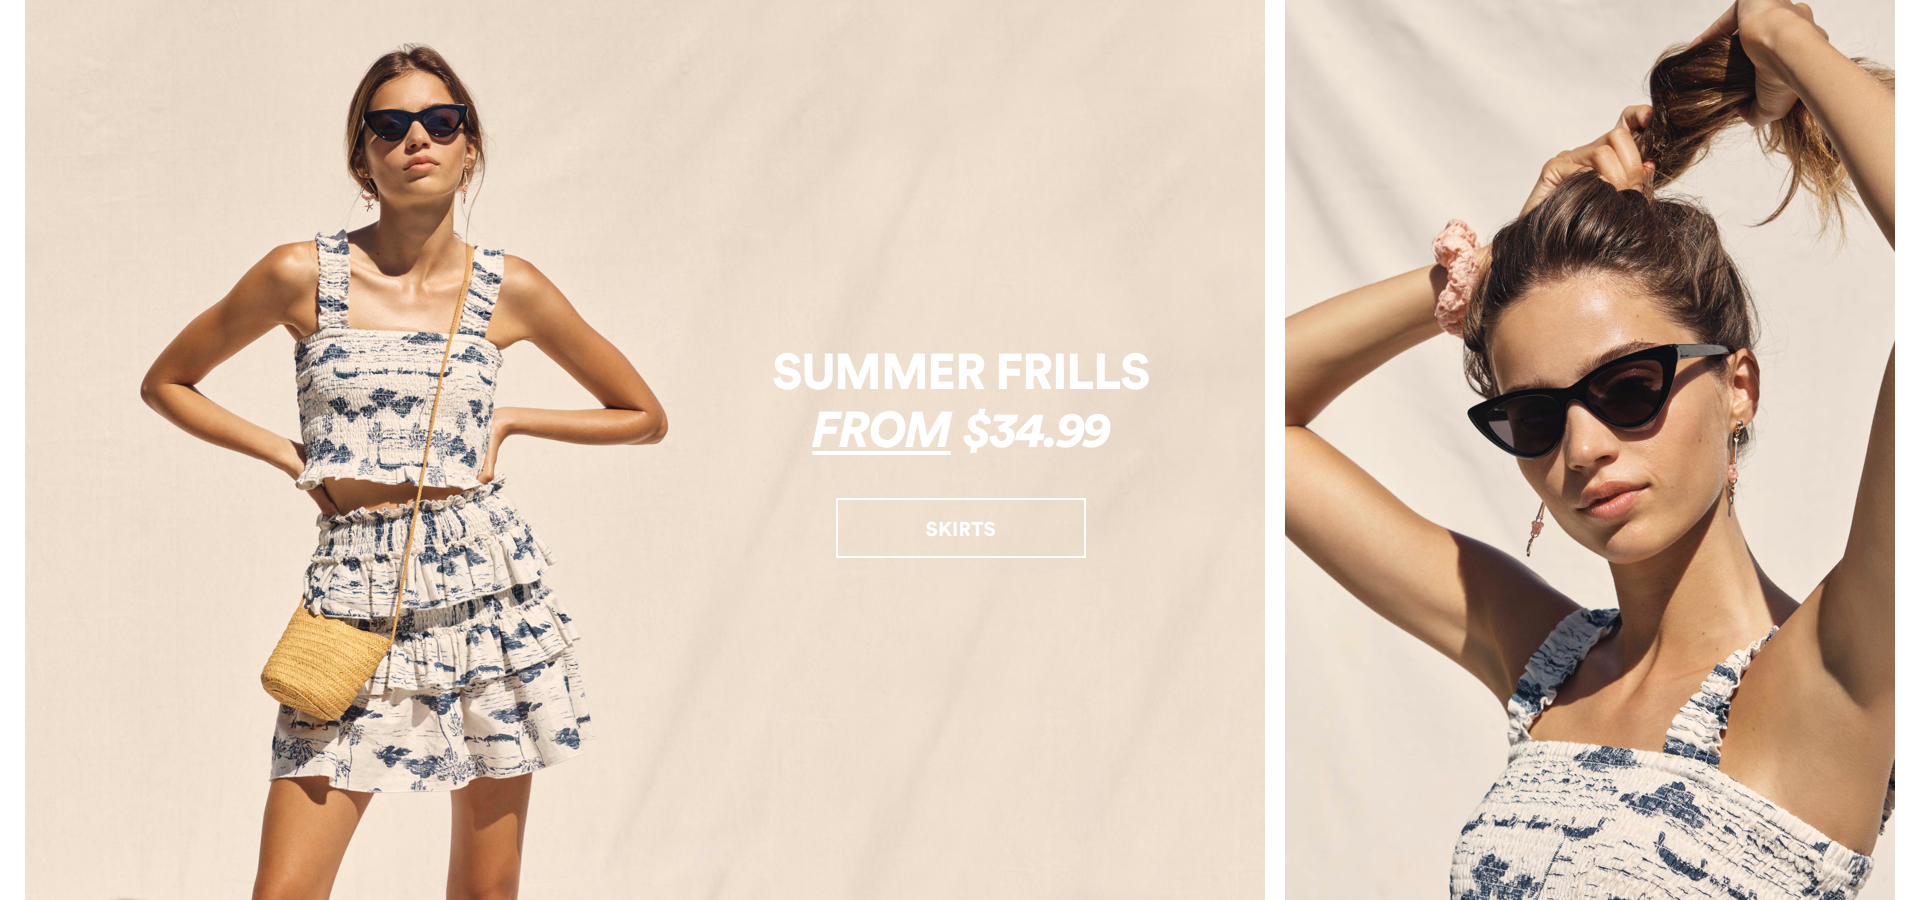 Summer Frills from $34.99. Click to Shop.